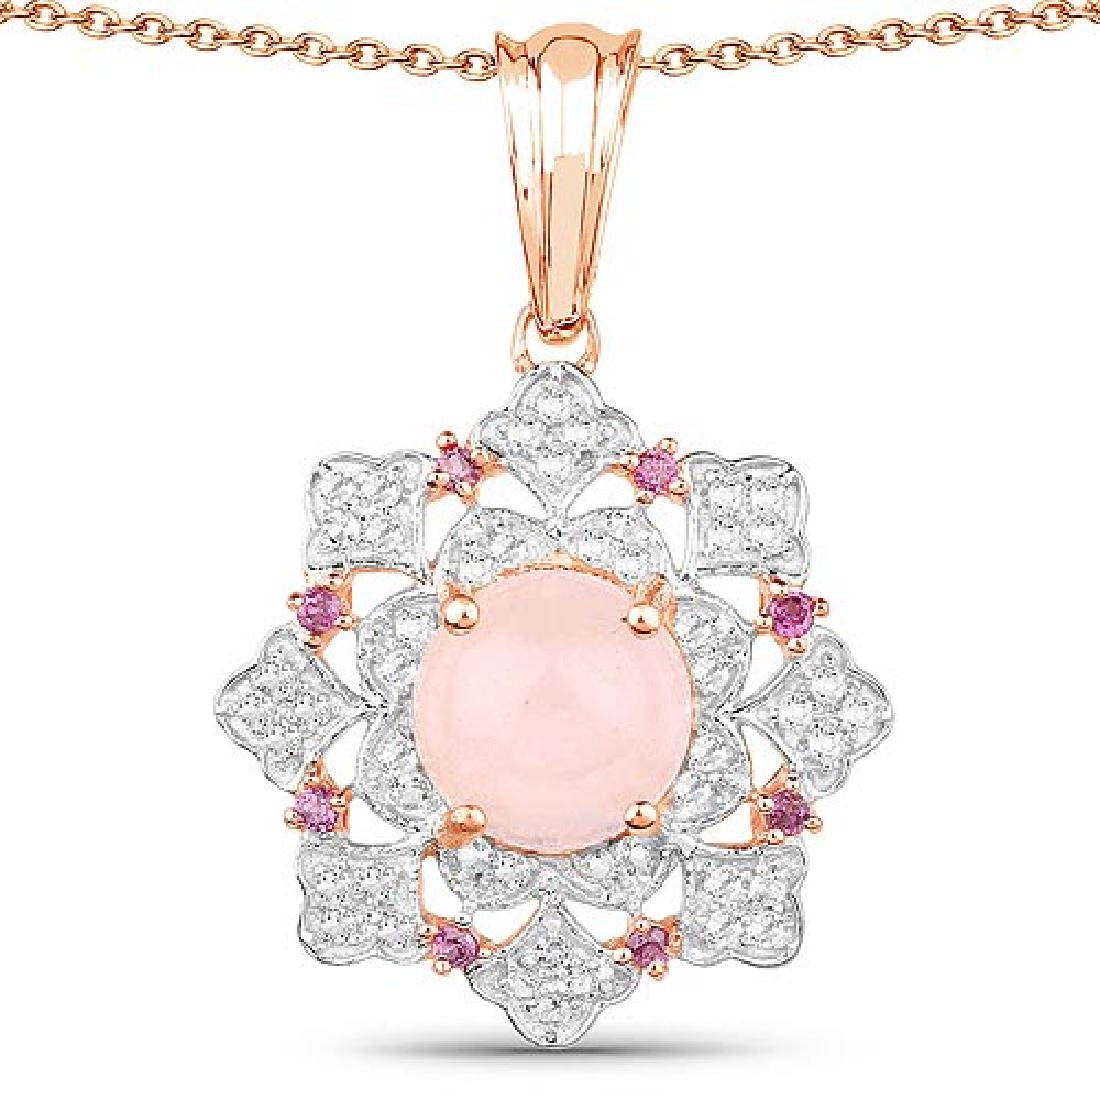 14K Rose Gold Plated 3.72 Carat Genuine Morganite Rhod